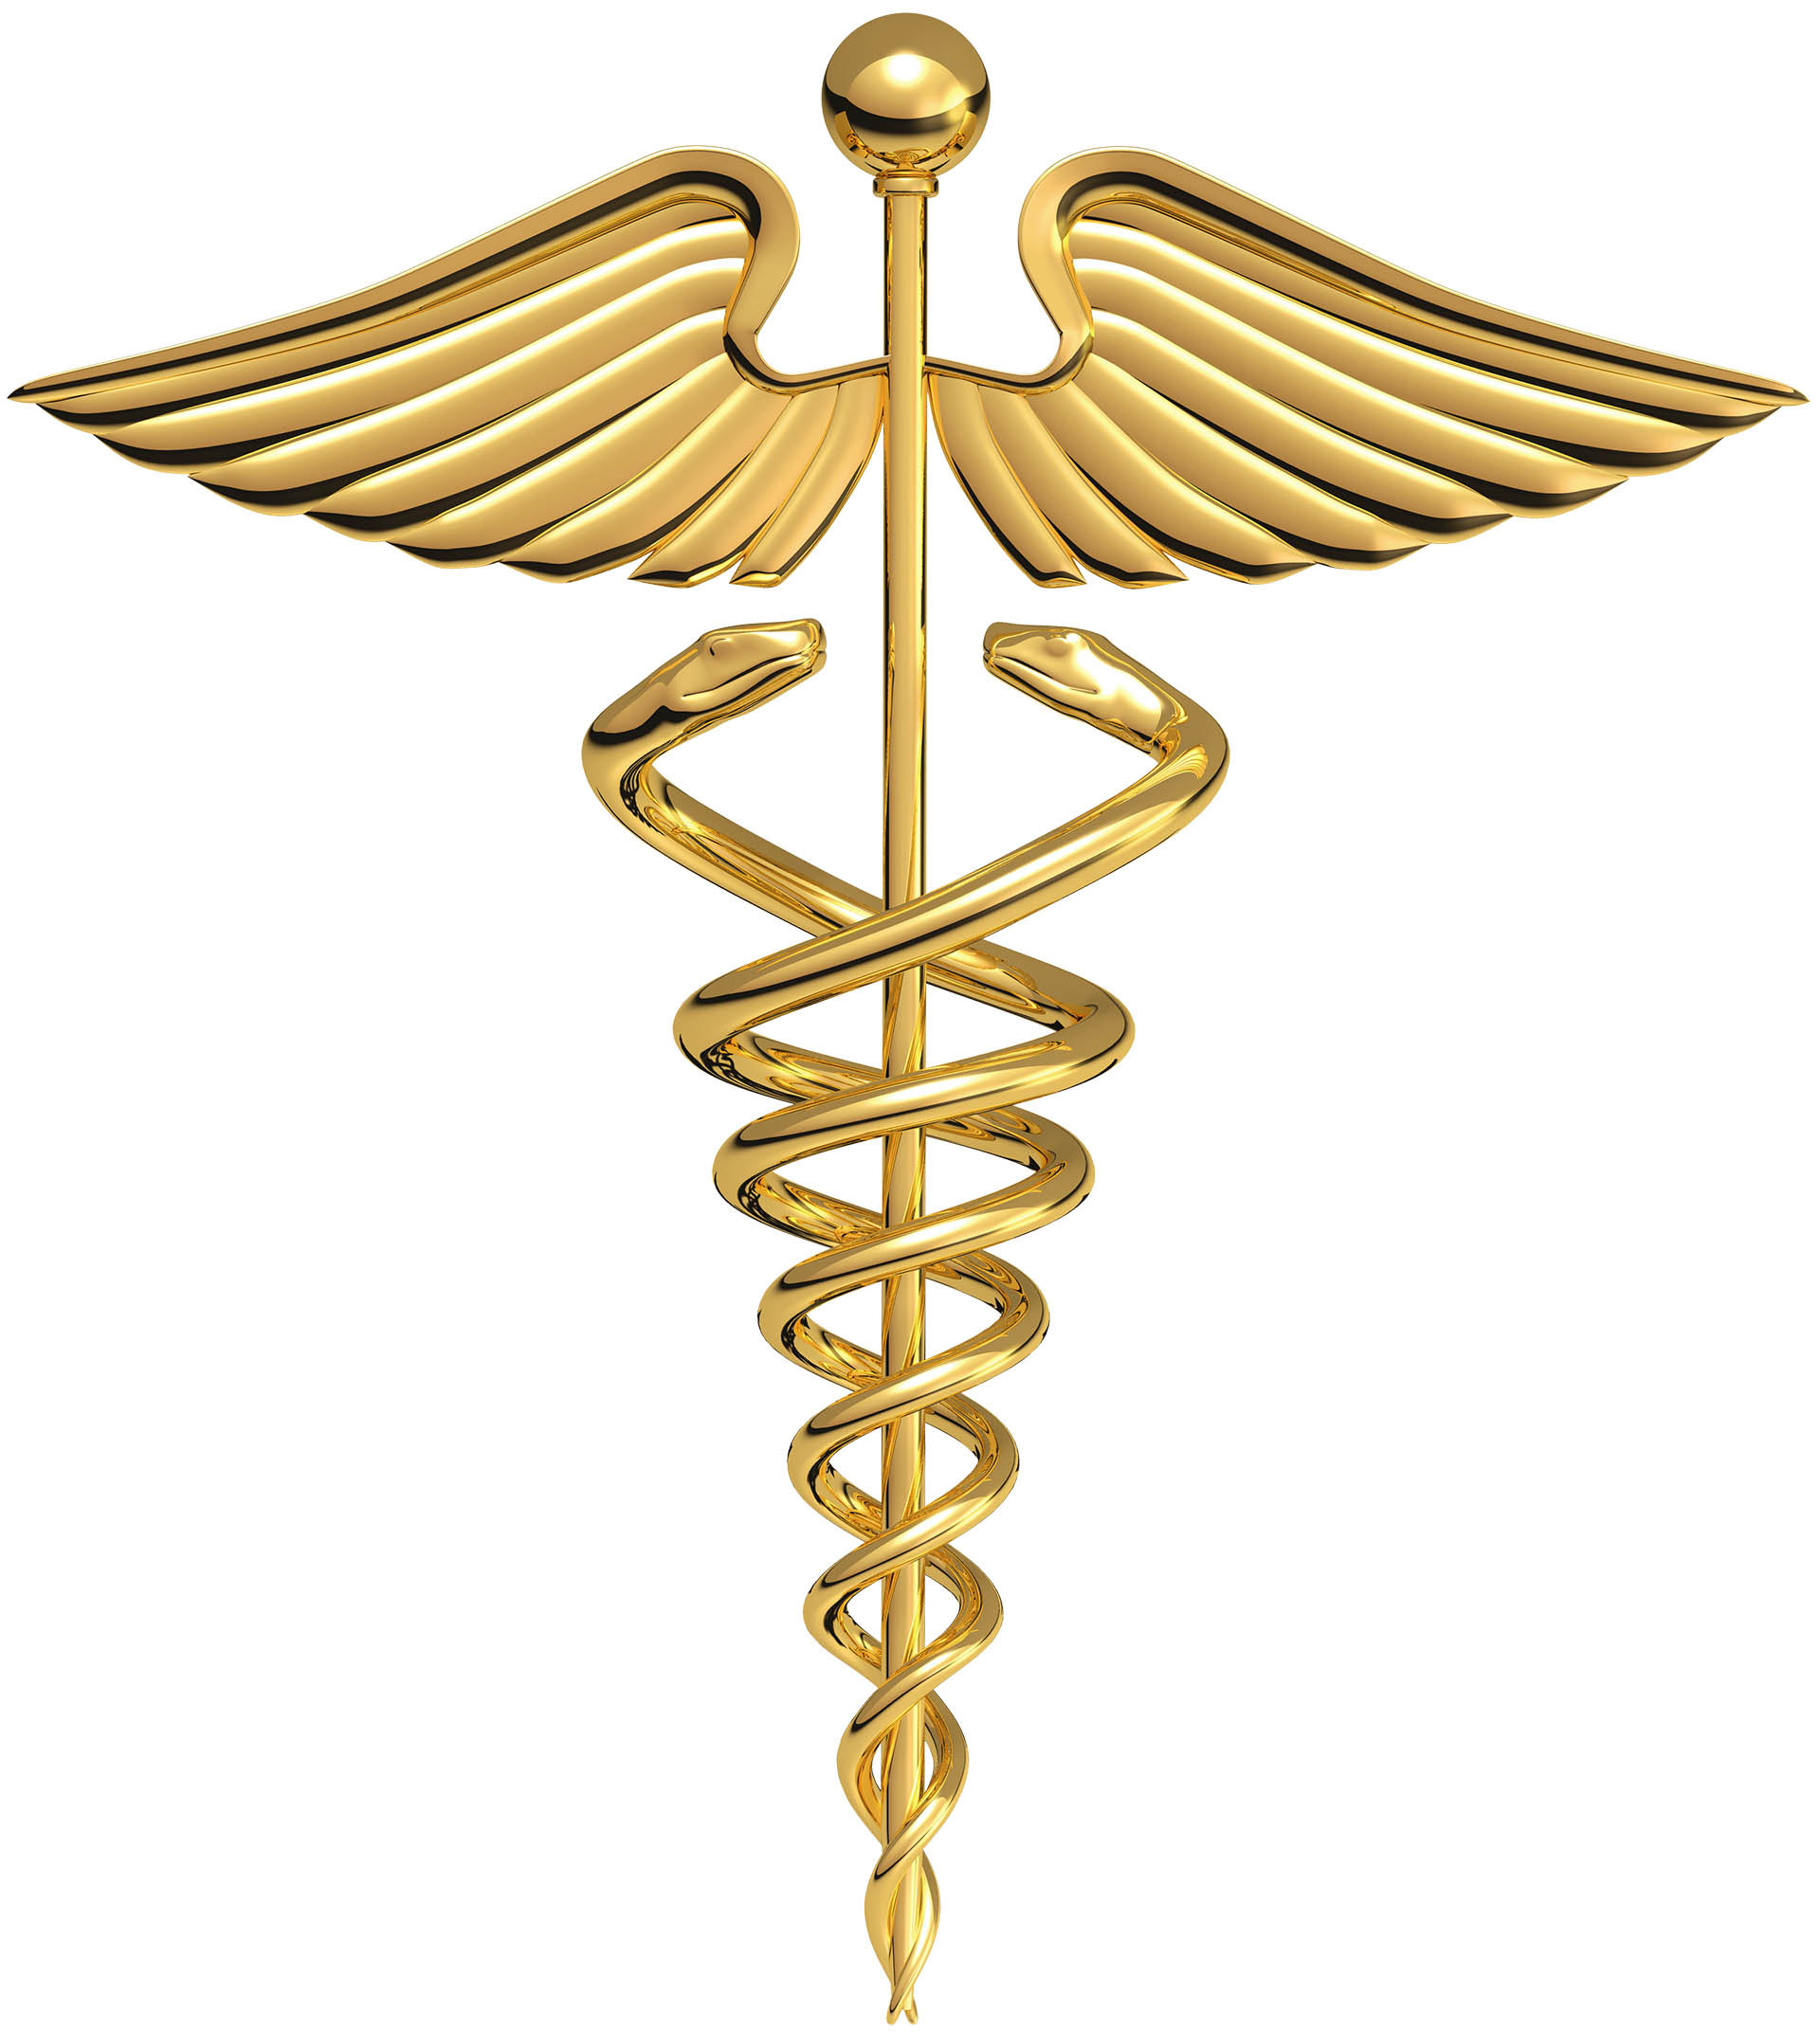 Caduceus - GOOD HEALTH - Messenger of the gods - The gods ARE NEUTRAL, SERIOUS, CRITICAL AND GOOD - COMPASSION - MERCY - BENEVOLENCE - HUMANENESS - GOD'S WILL - Most Compassionate, Most Merciful, Most Benevolent, Most Humane - BE HUMANE - SEEK THE TRUTH - SEEK JUSTICE - BE KIND - BE GENTLE - DO NO HARM - DO NOT HATE - DO NOT FEAR - FEAR NOT - BE NOT AFRAID - CAUSE NO PAIN - BE AS PAINLESS AS POSSIBLE - CAUSE NO FEAR - DO NOT BE SCARY - DO NOT PUNISH - DO NOT MAKE THREATS - DO NOT BE COERCIVE - BE PERMISSIVE - BE TOLERANT - USE BIRTH CONTROL - PERMIT DIVORCE - EMPATHY IS CRITICAL - RESPECT FOR THE DIGNITY OF ALL HUMAN BEINGS IS CRITICAL - FREE UNIVERSAL HEALTH CARE - FREE UNIVERSAL EDUCATION - UNIVERSAL HOME OWNERSHIP